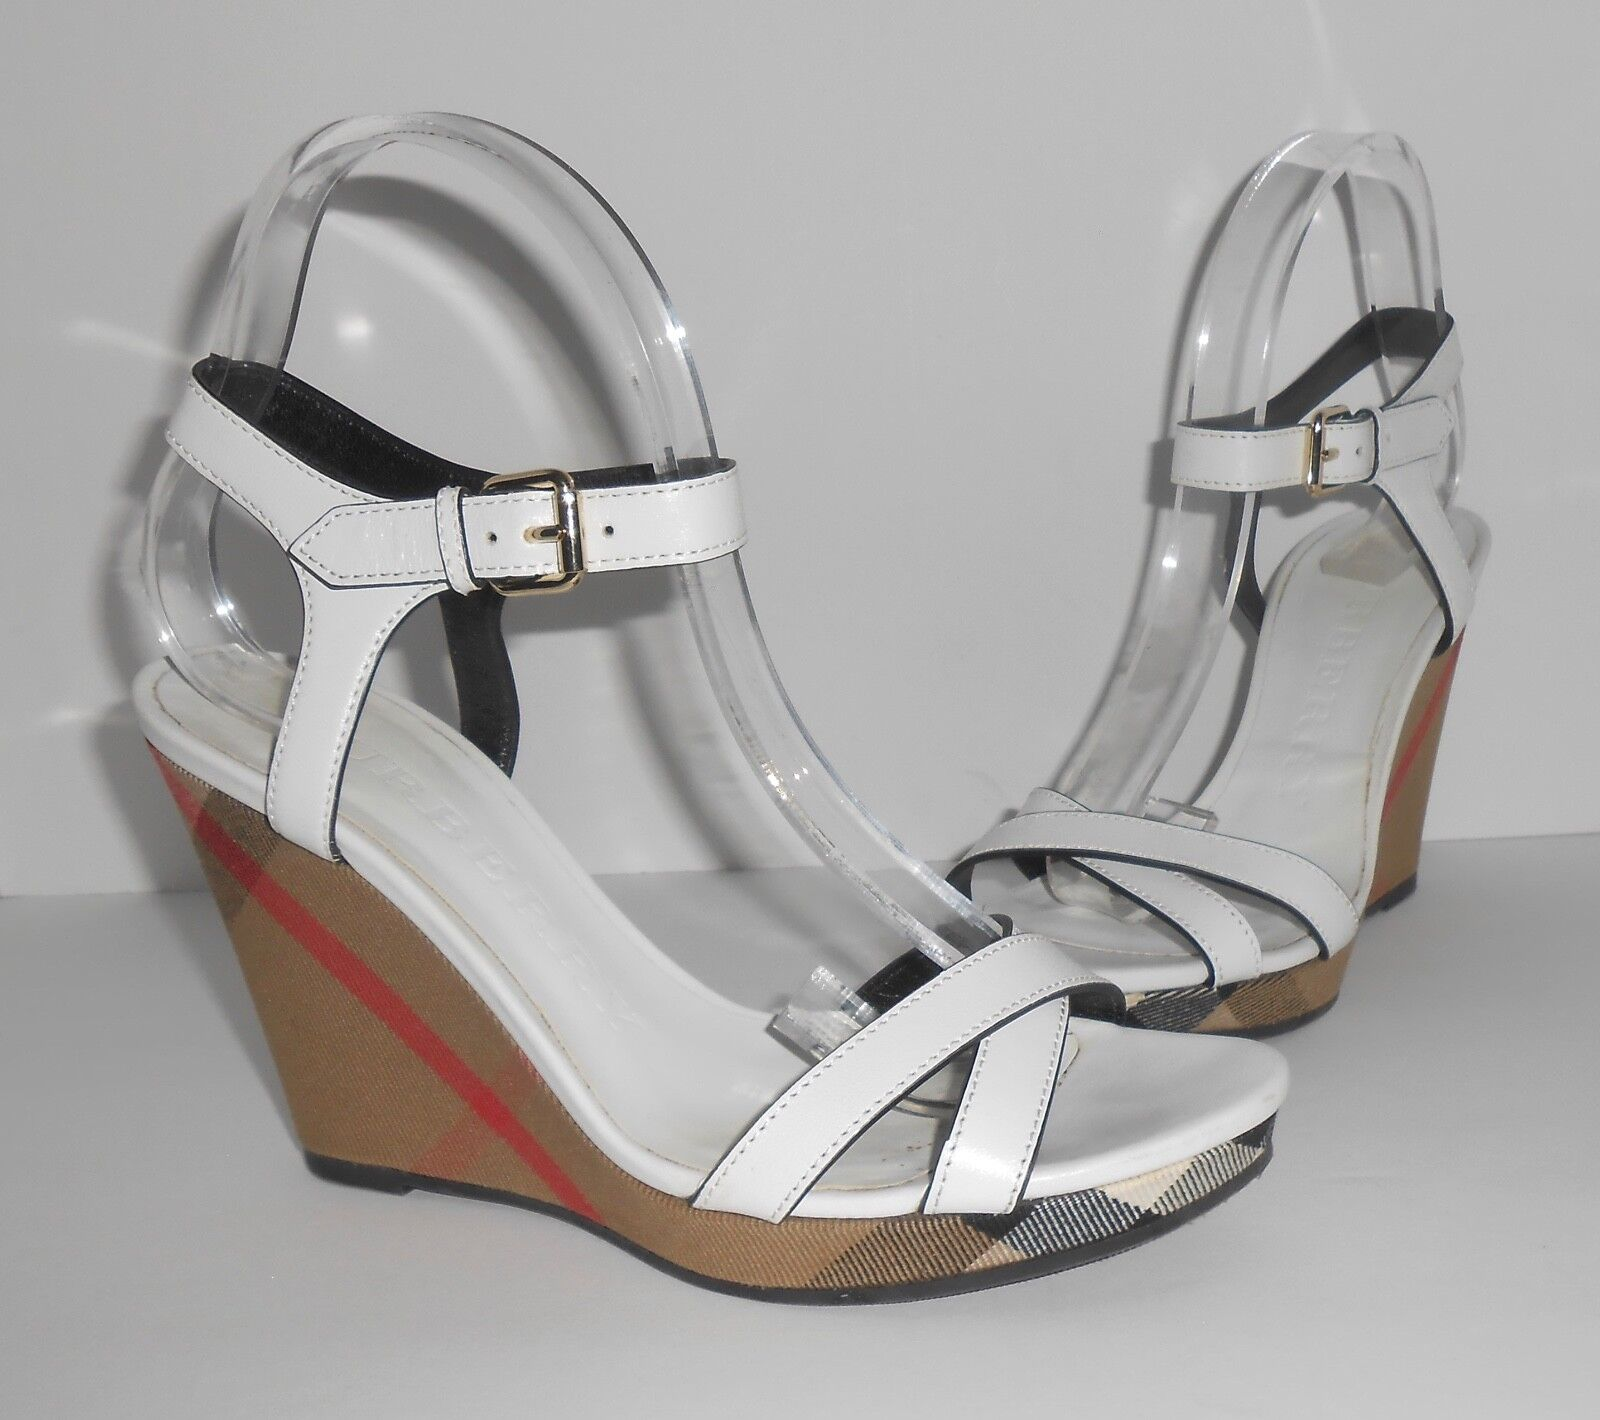 Burberry Rastrickson Check Wedge Sandals White Size 38